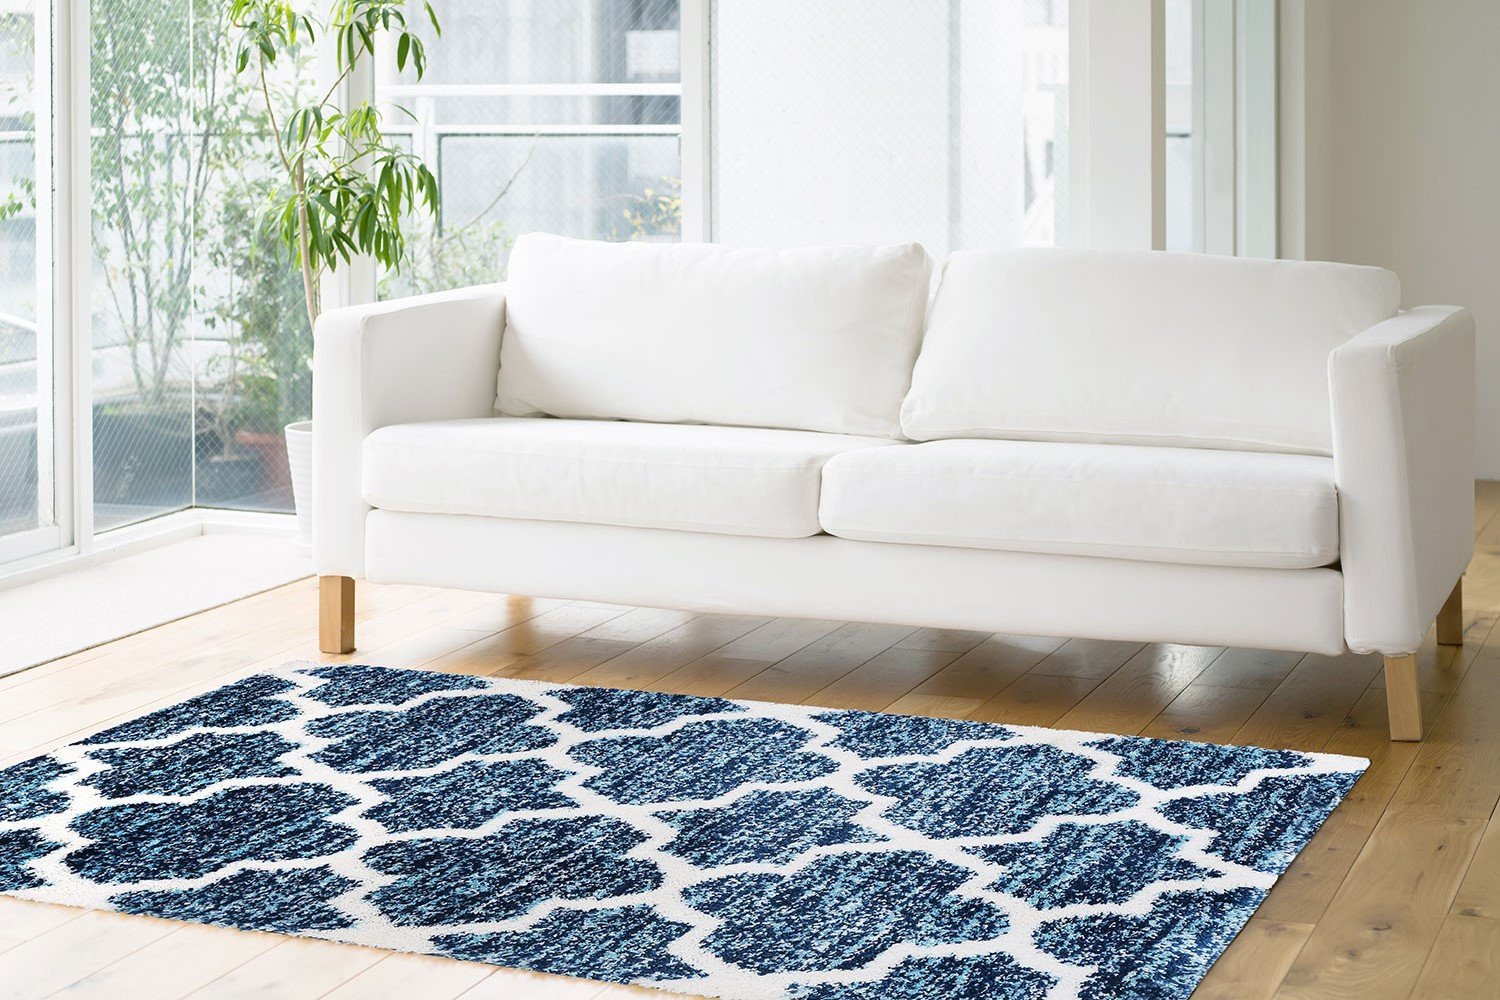 Rug for Living Room Ideas Small Living Room Ideas On A Bud